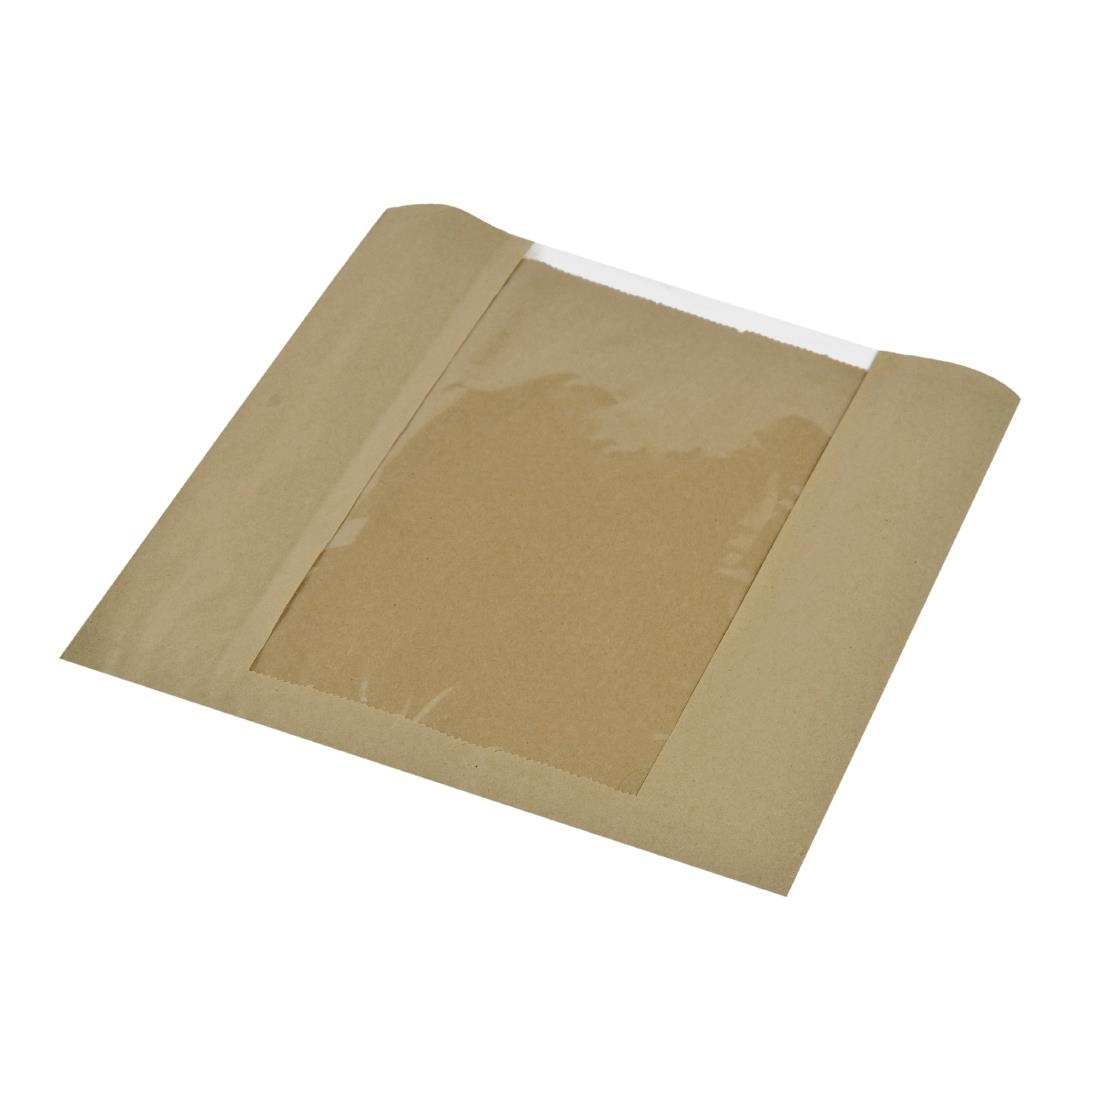 Vegware Compostable Large Kraft Sandwich Bags With PLA Window Pack of 1000